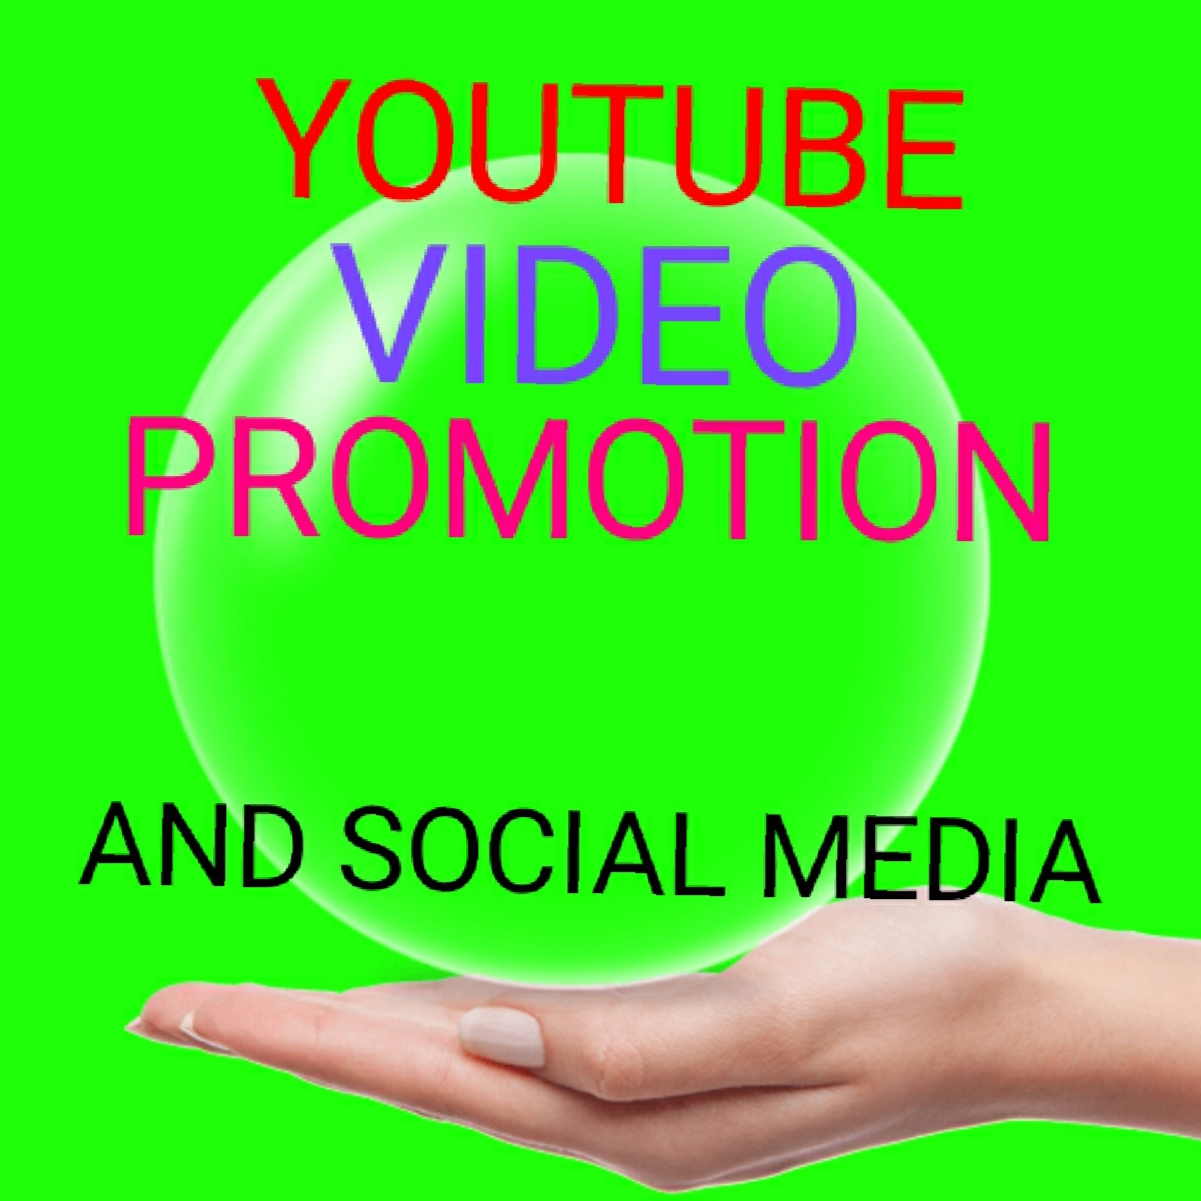 Real YouTube video promotion and social media marketing